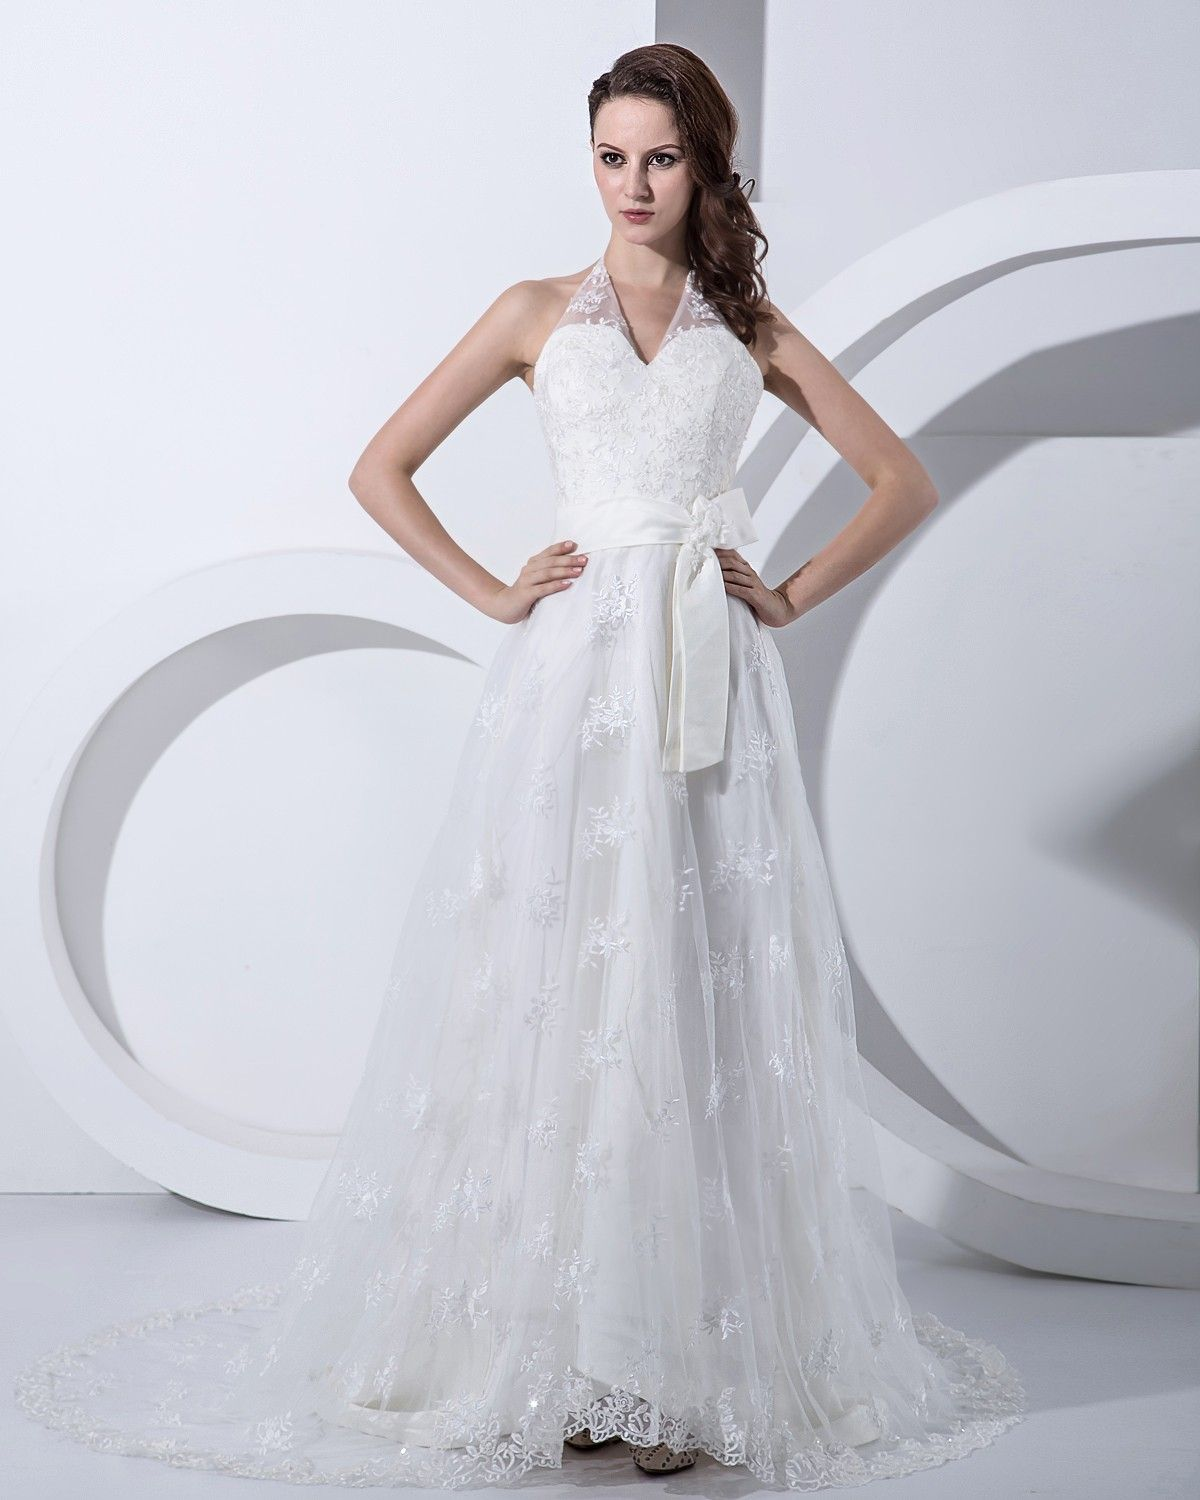 Casual wedding dresses with sleeves  casual wedding dressessheath wedding dressesstrapless wedding